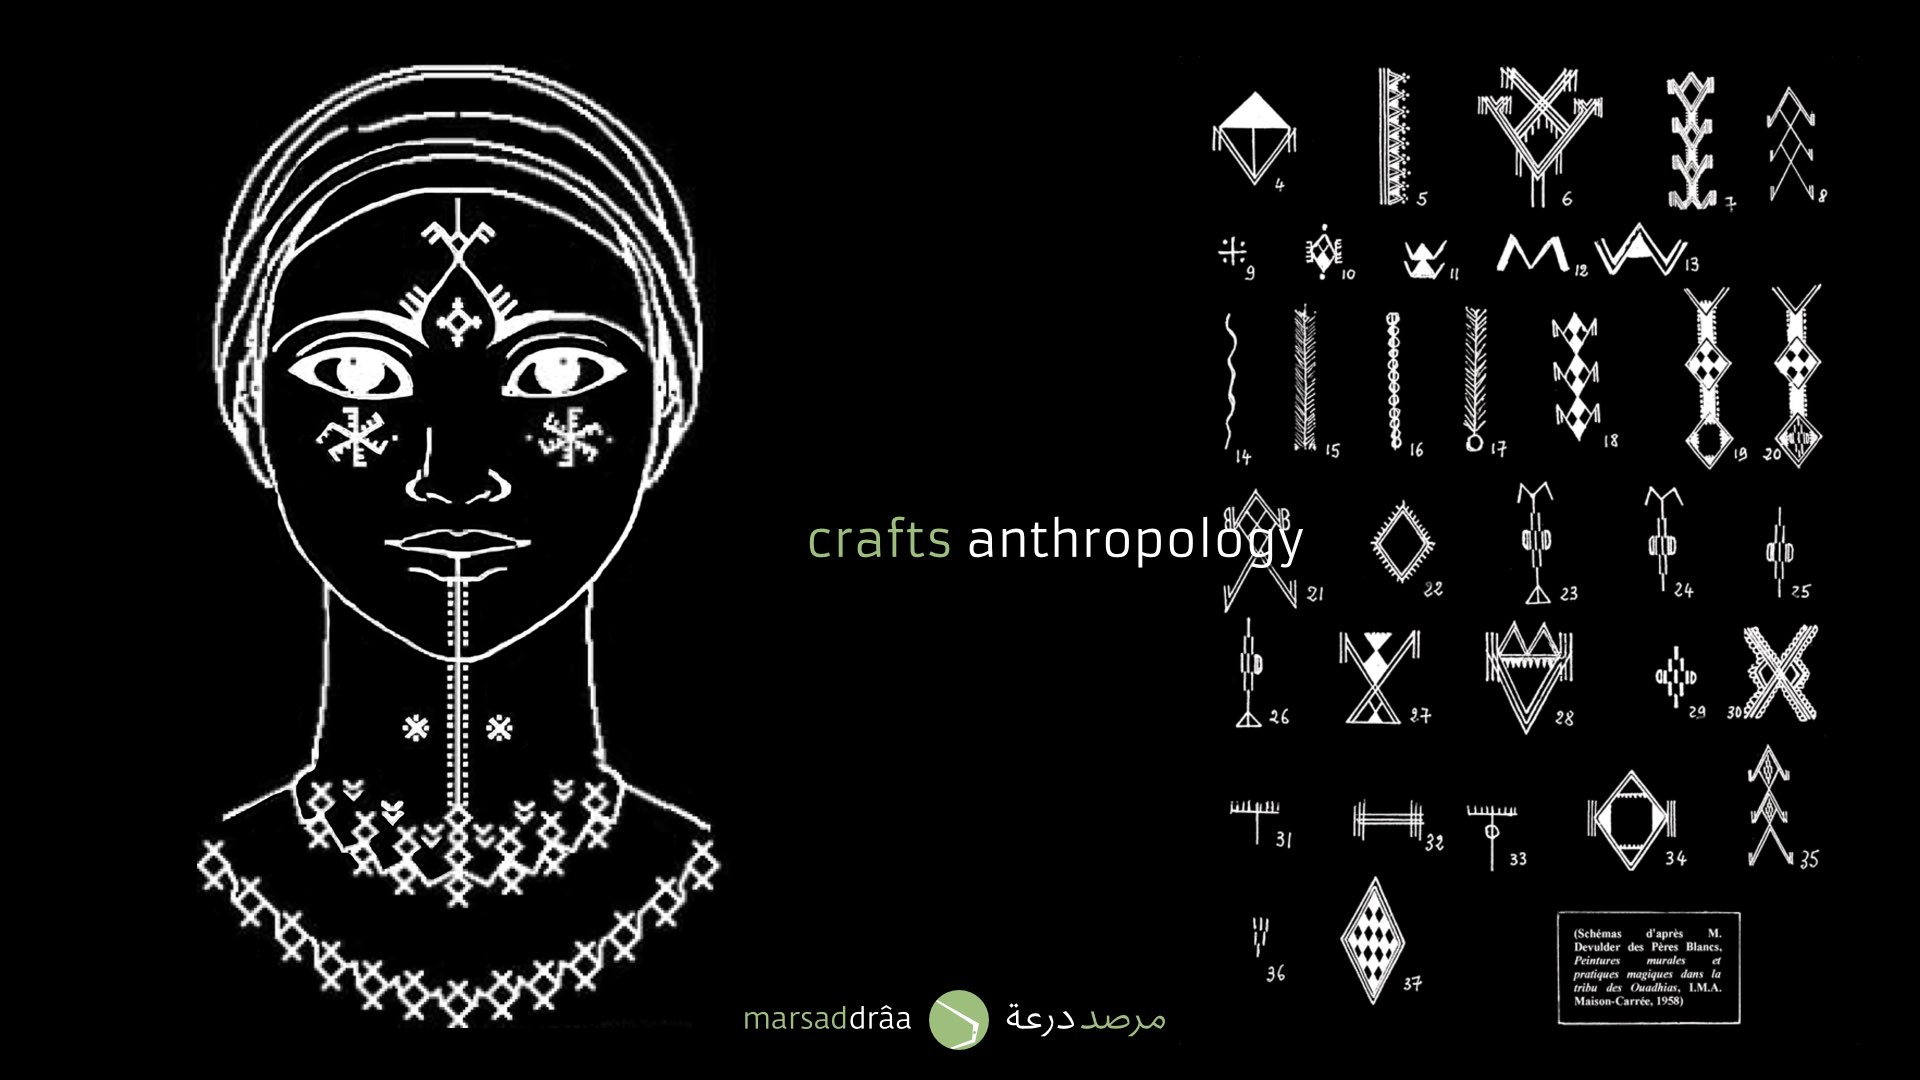 These motifs are Berber tattoos used by women to protect themselves from some beliefs.